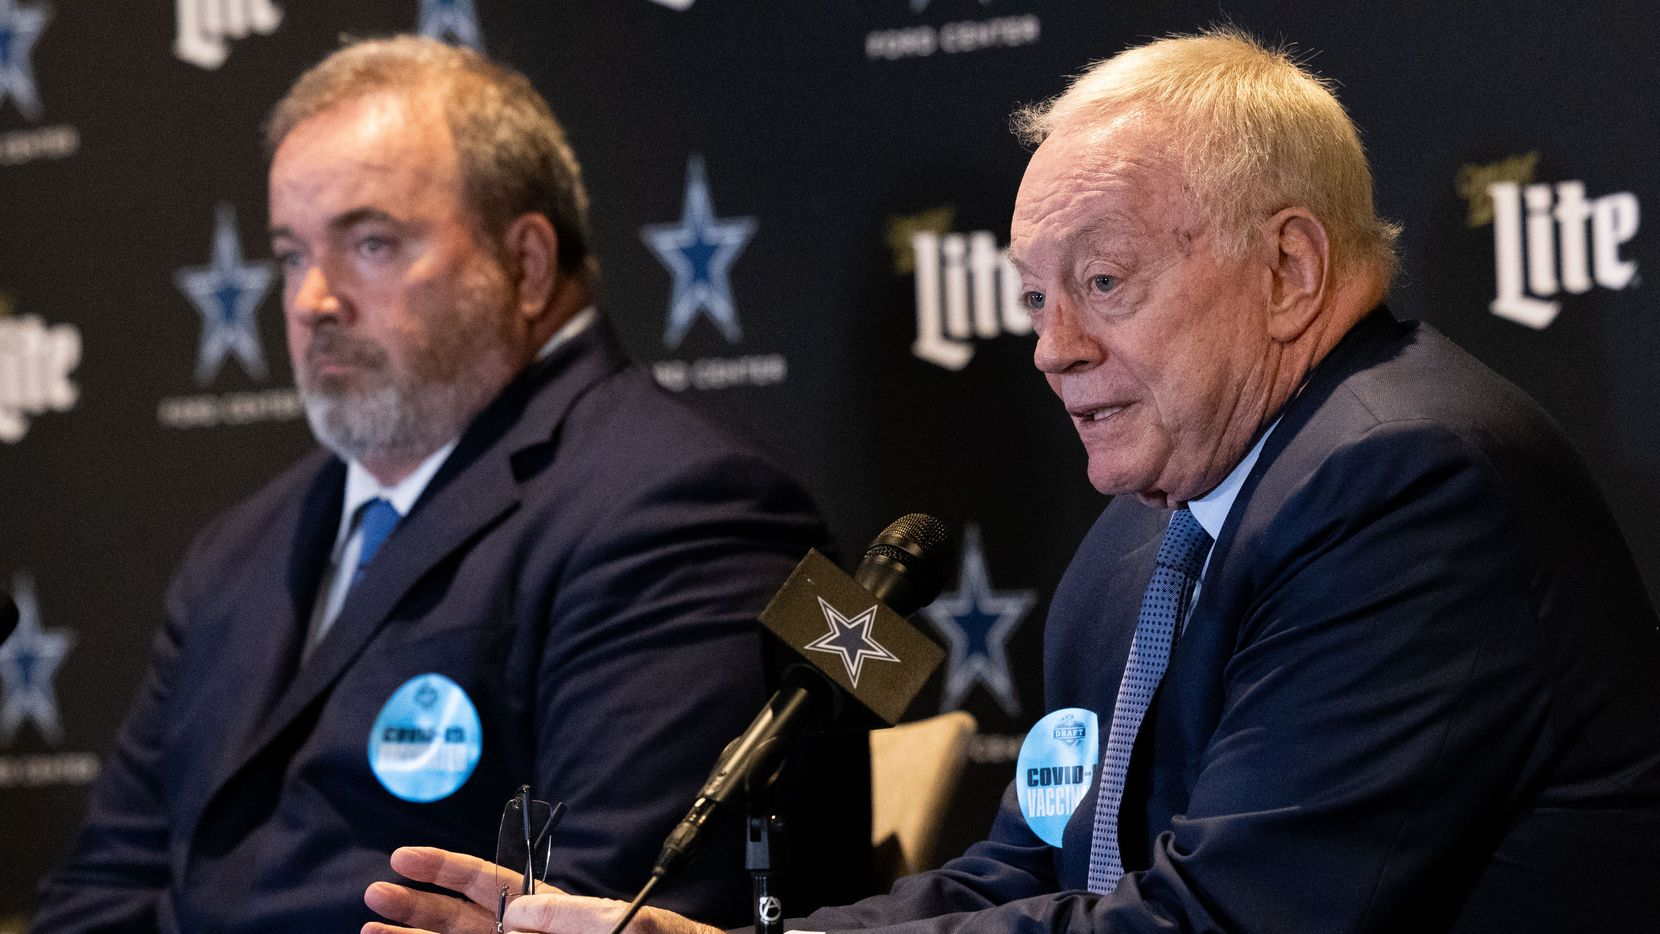 (From left) Coach Mike McCarthy and Dallas Cowboys owner Jerry Jones speak at a press conference following their decision to take Micah Parsons during the NFL draft at the Star on Thursday, April 29, 2021, in Frisco.